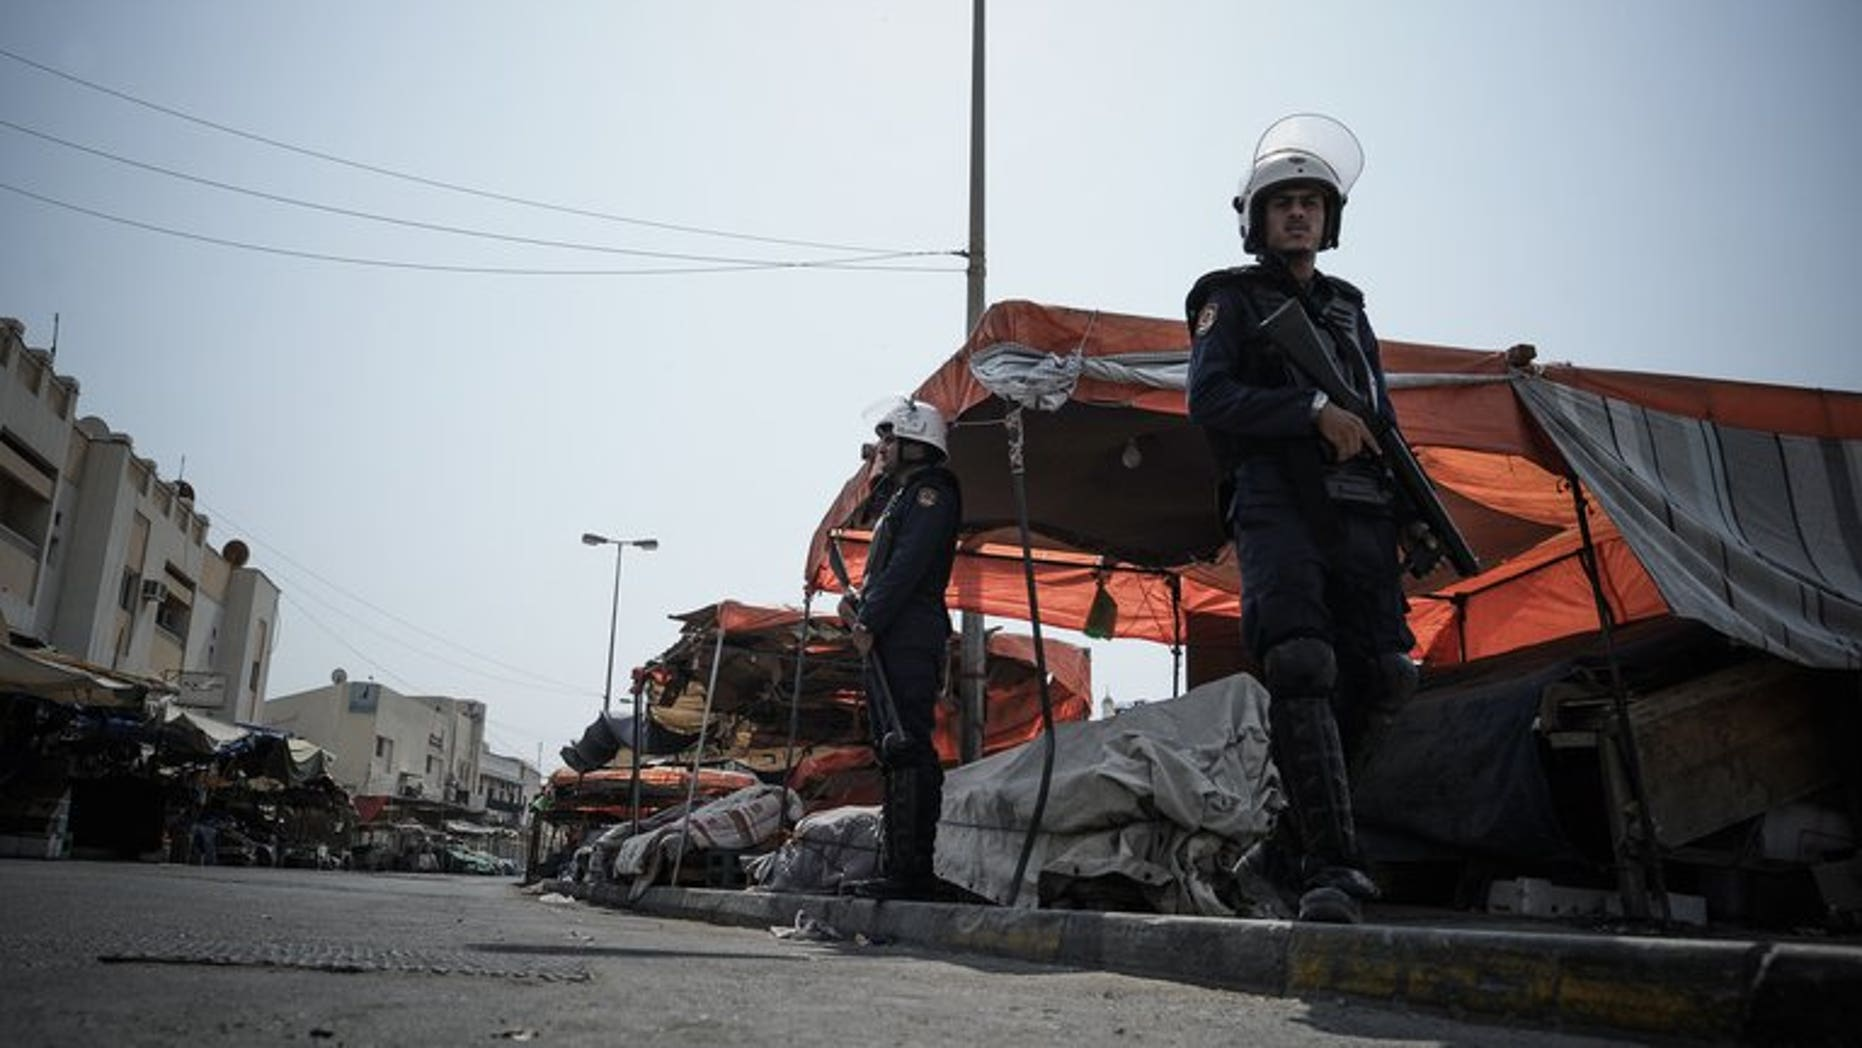 Bahraini police force officers on guard watching the road that runs through the market in the village of Jidd Hafs, west of Manama, on August 14, 2013. Bahrain's prosecutor has said it has launched a probe into riots at a detention centre as an activist said 40 prisoners were wounded as authorities restored order.